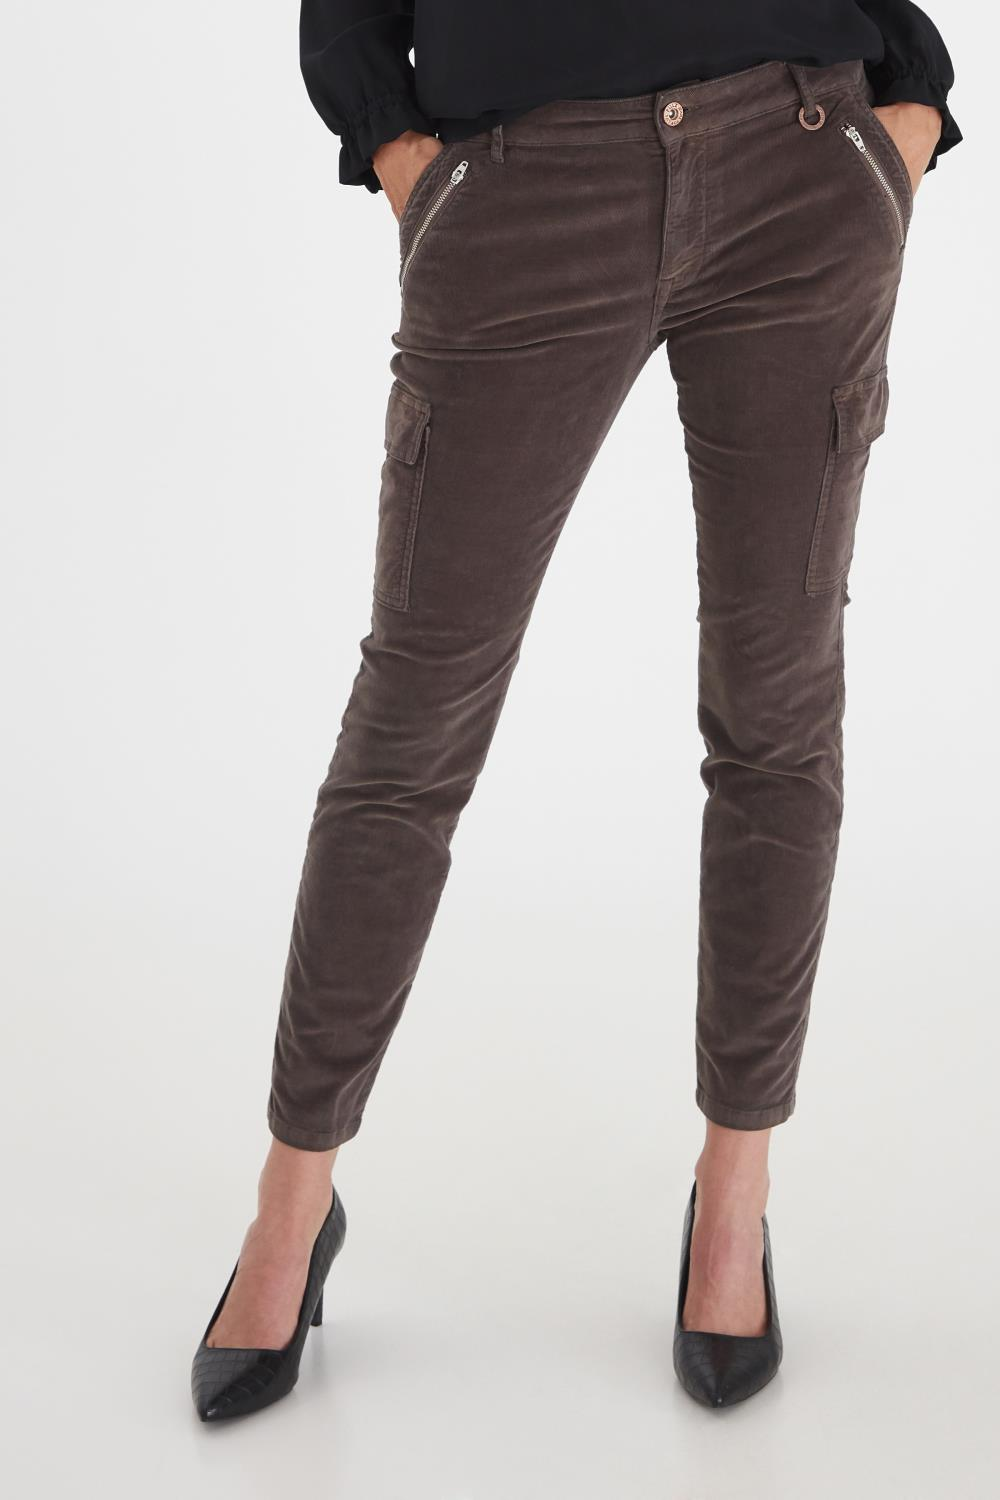 Pulz Elva pants, chocolate brown